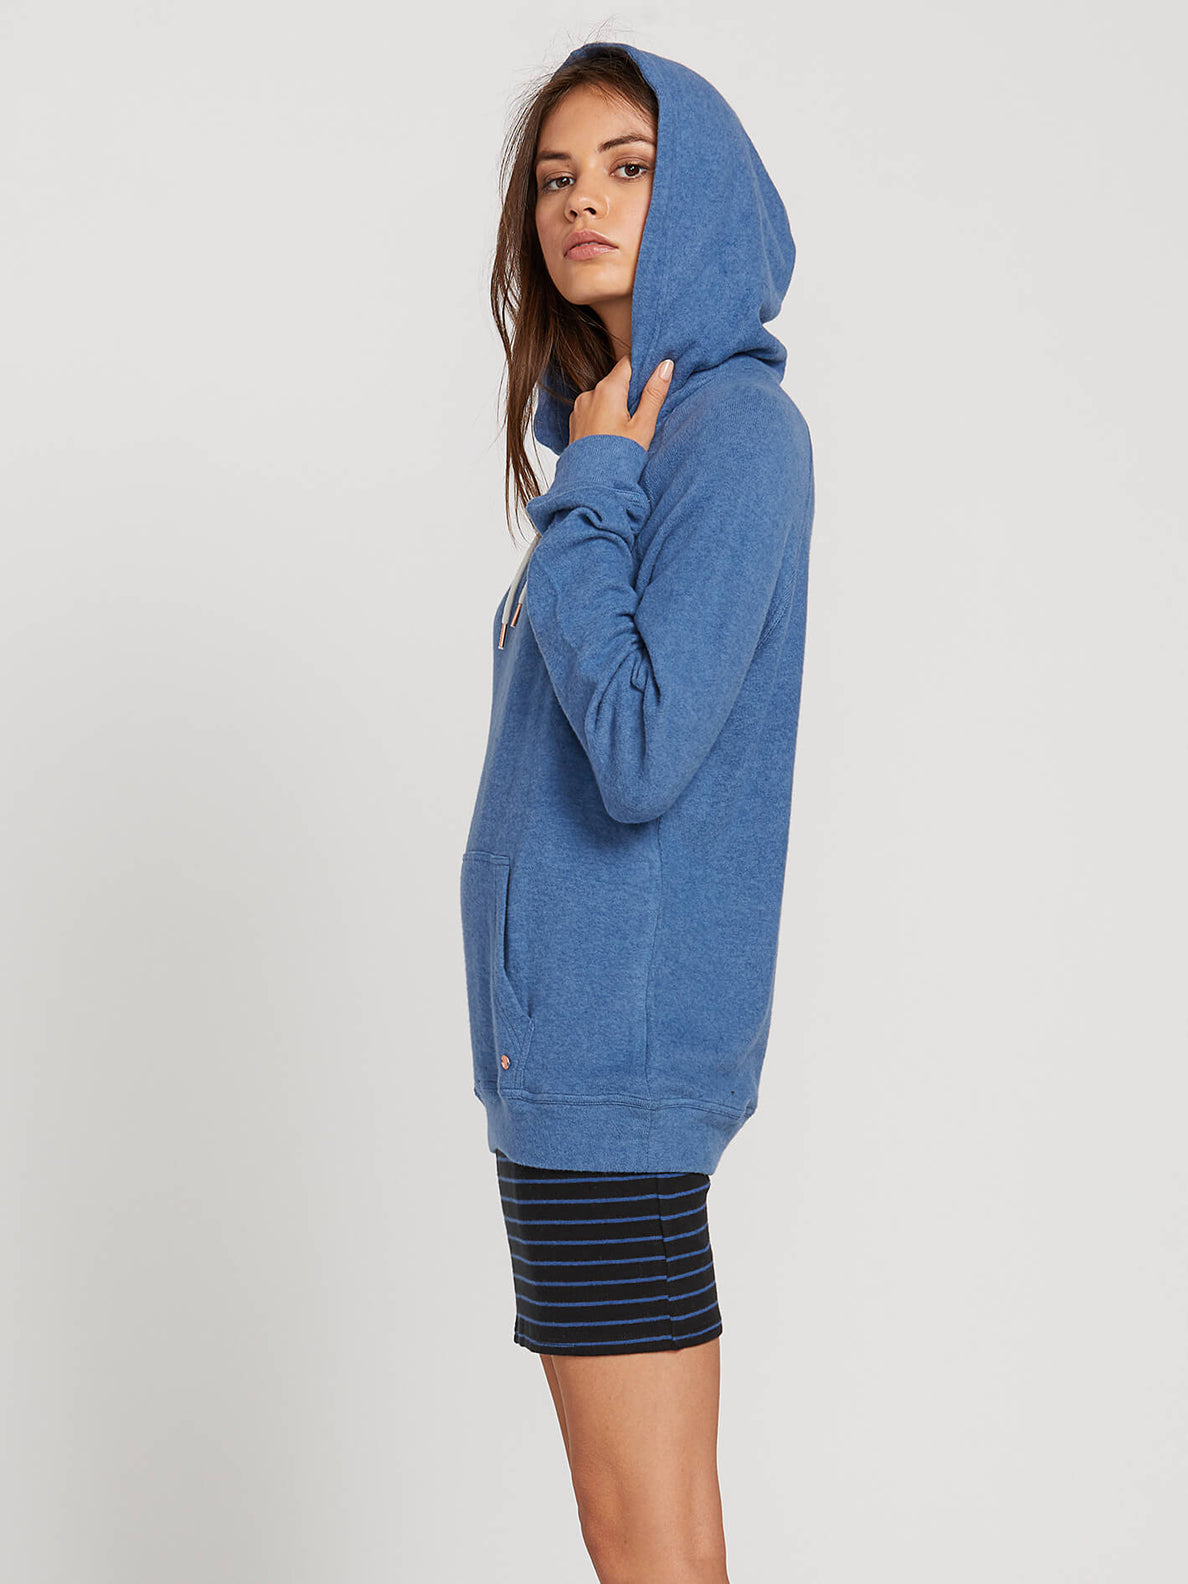 Lived In Lounge Hoodie In Blue Drift, Alternate View